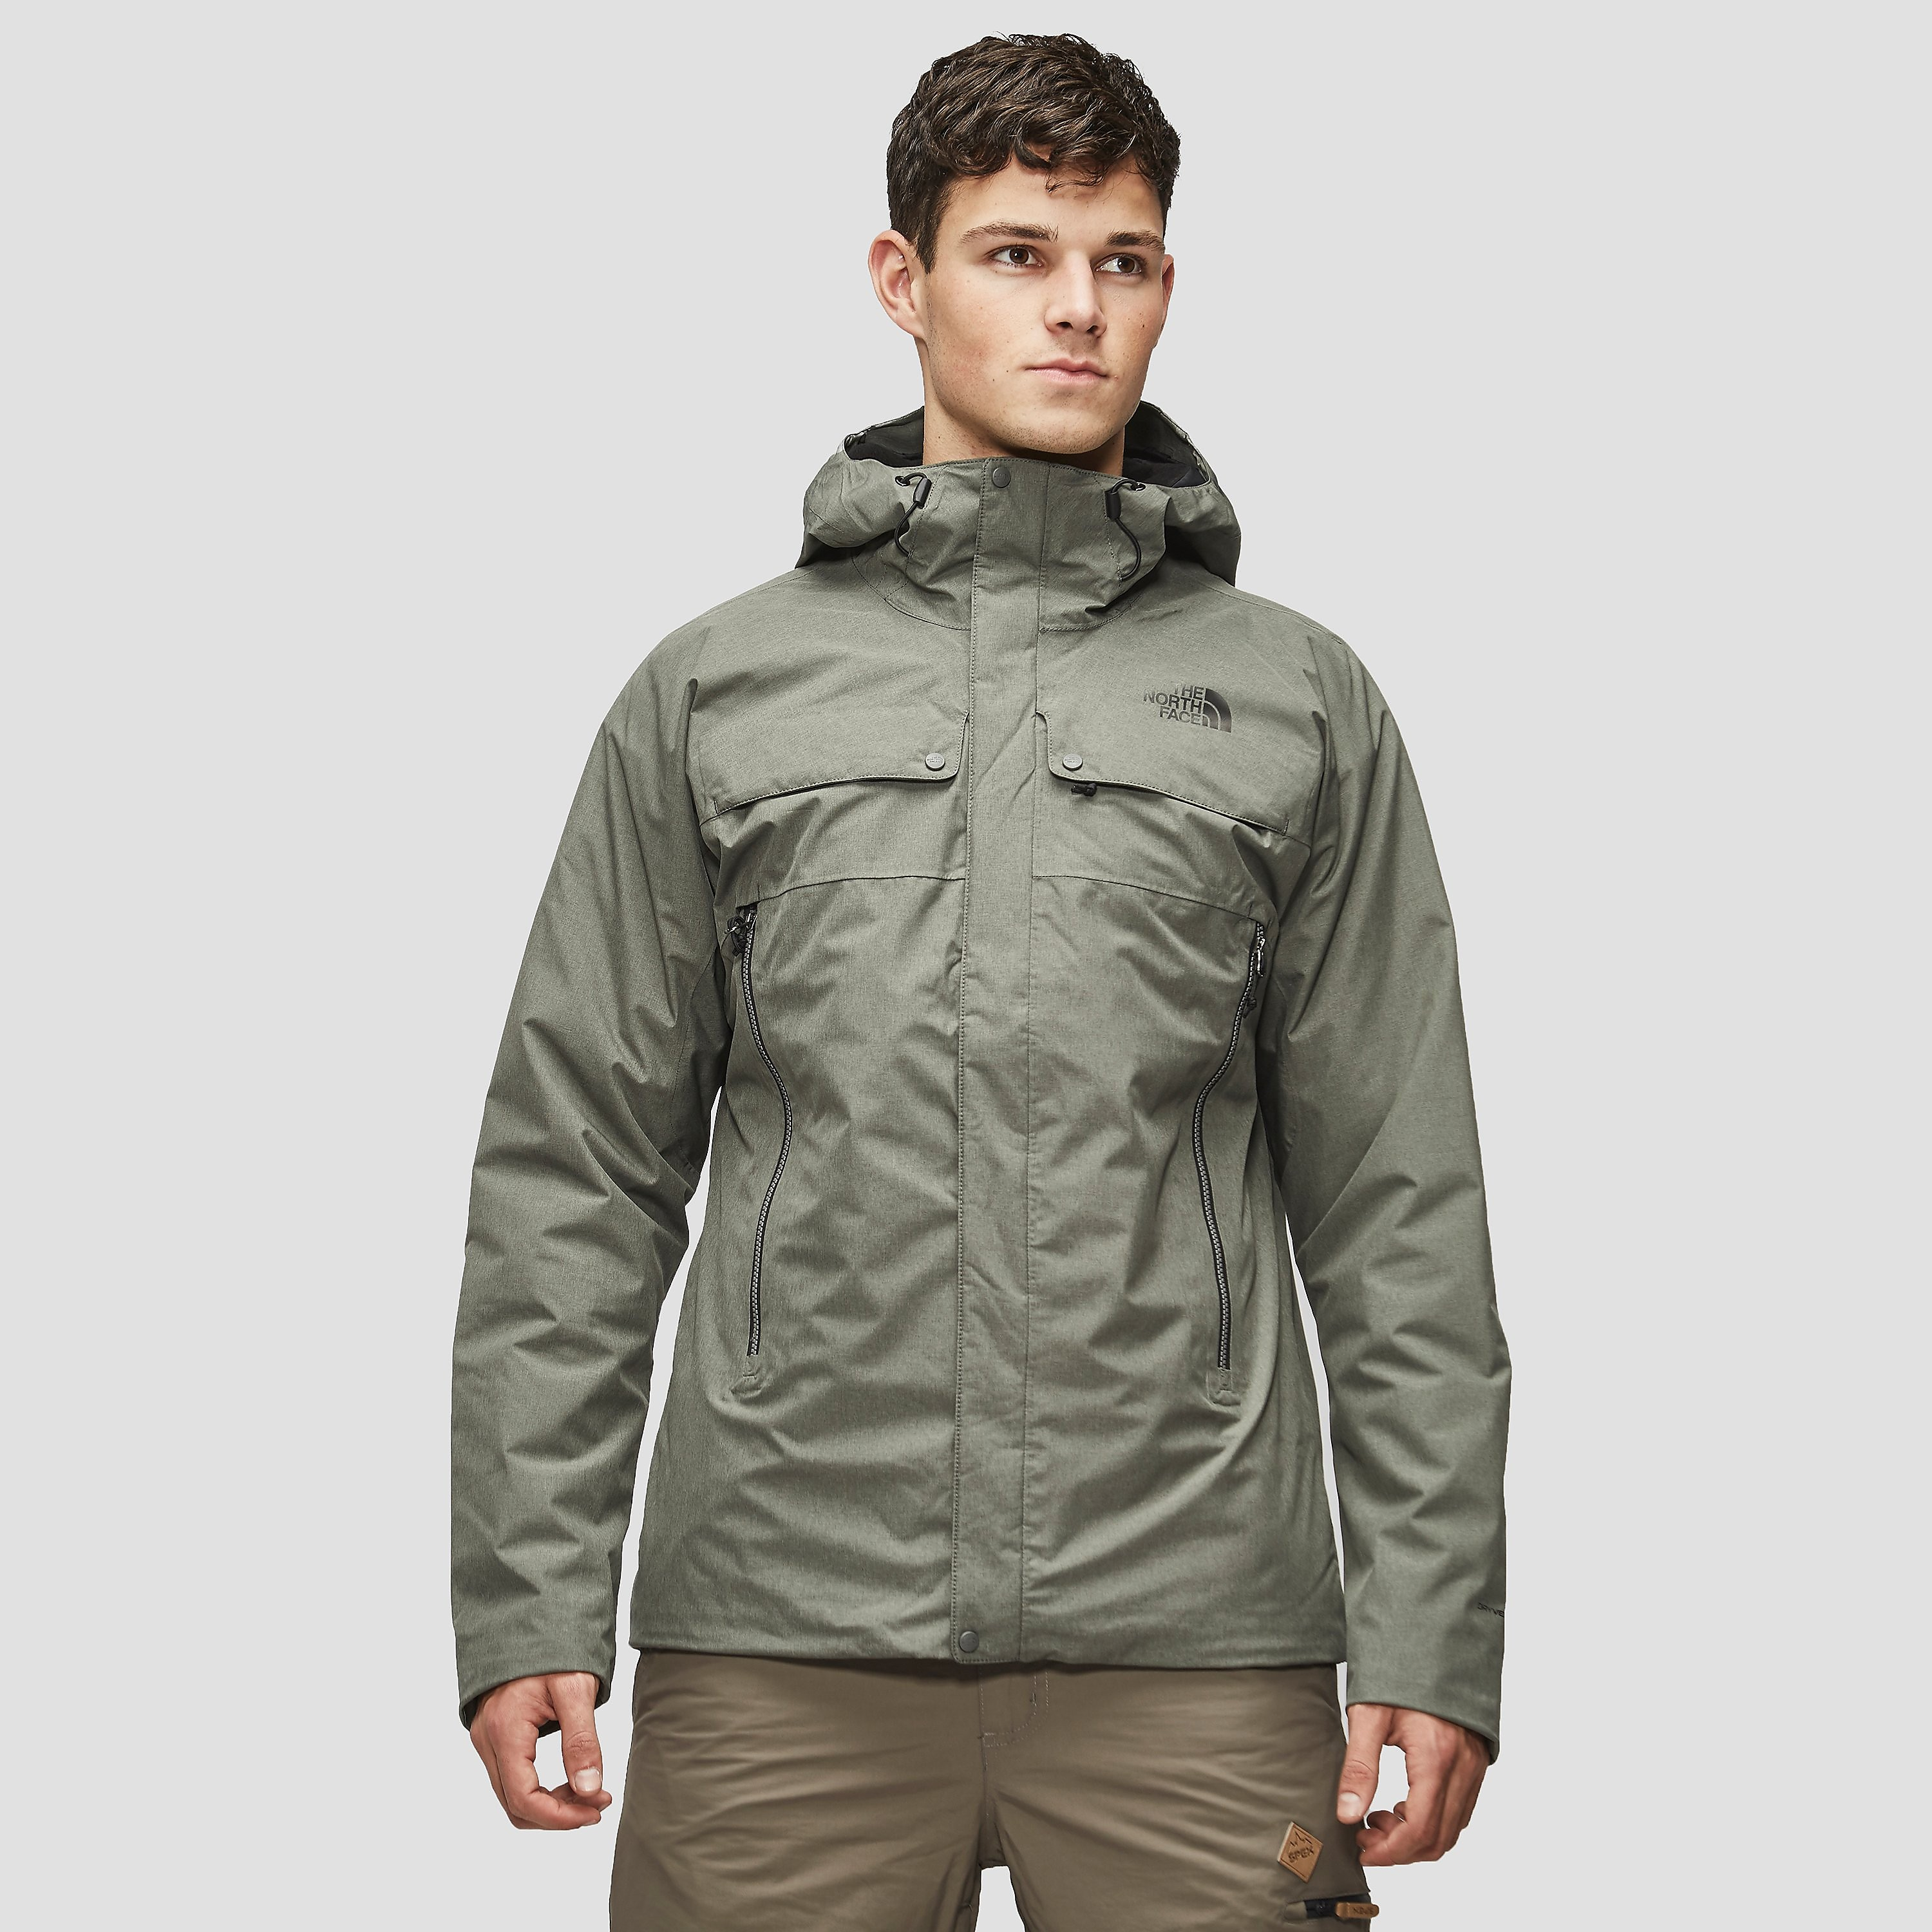 THE NORTH FACE TORENDO JAS